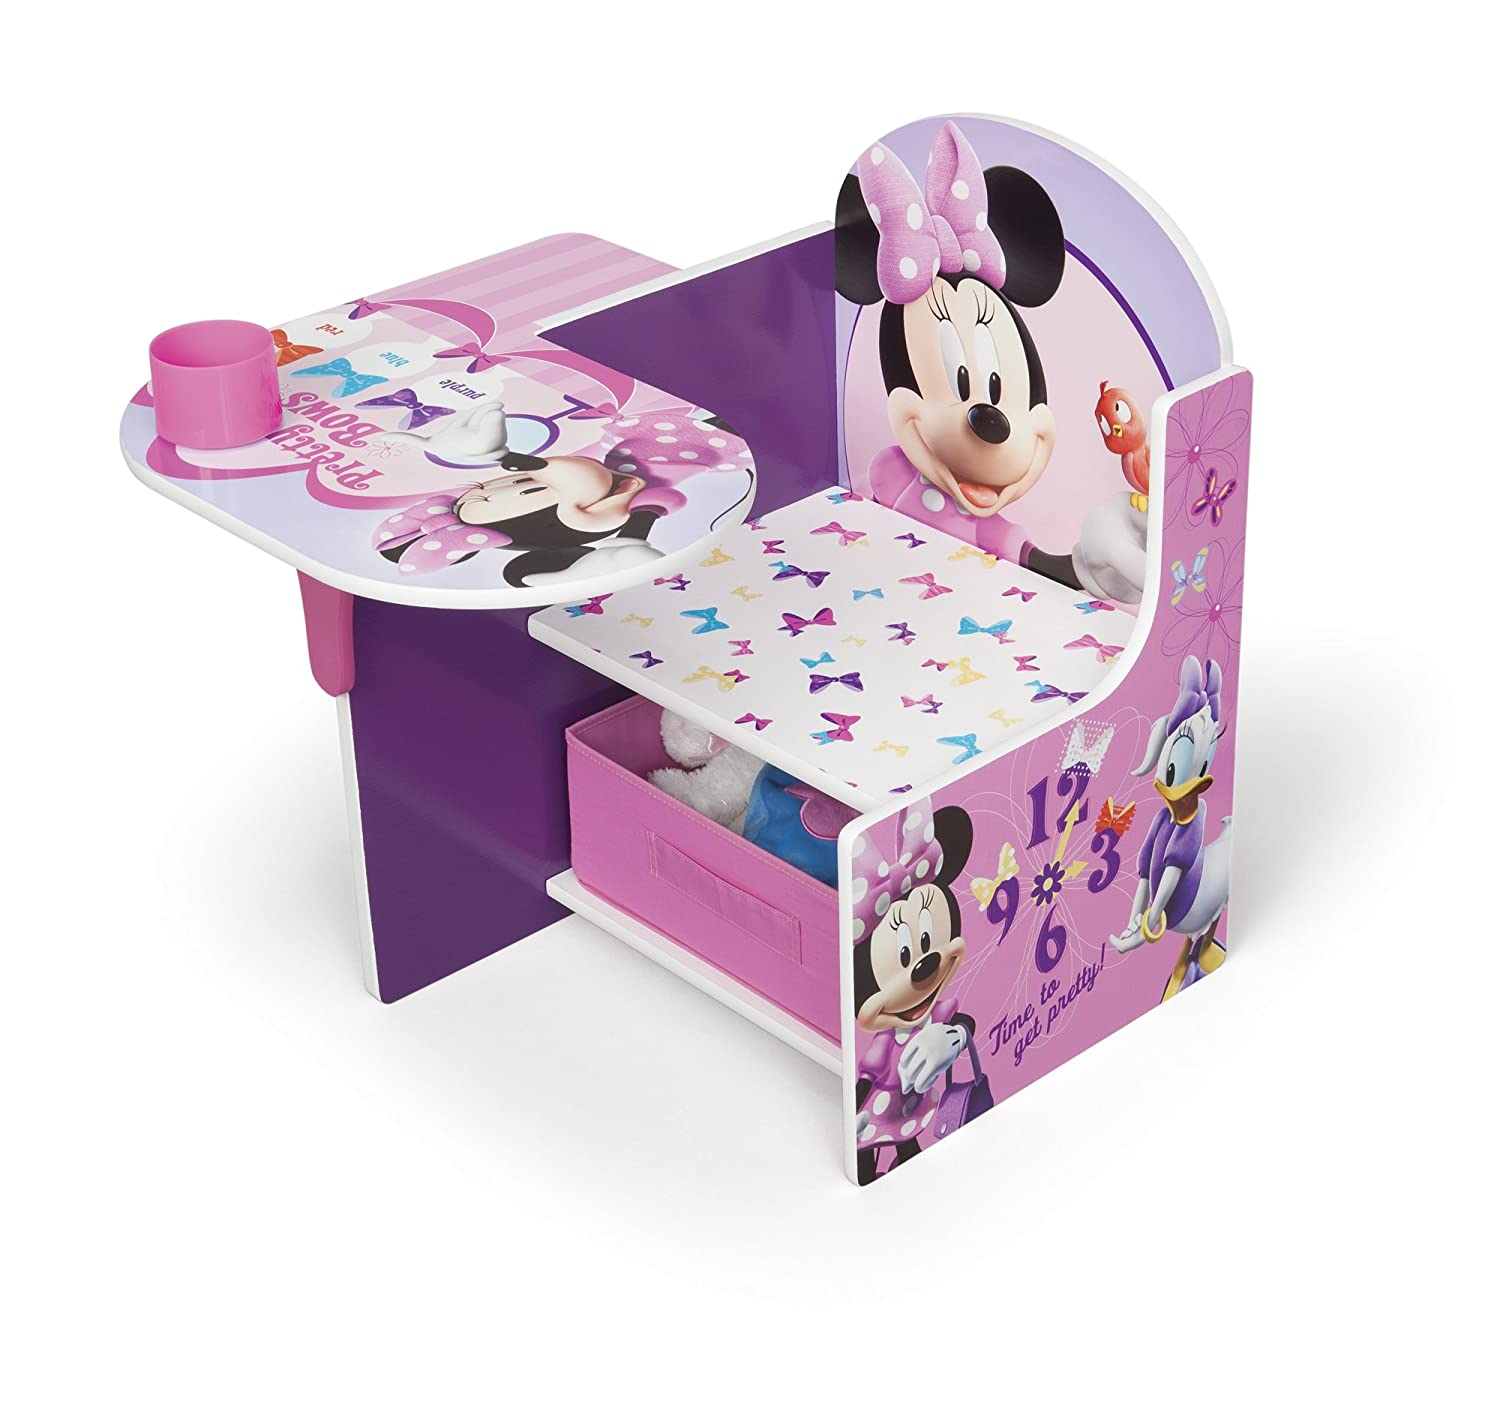 Minnie Flip Open Sofa picture on bring disney in your home for fun with Minnie Flip Open Sofa, sofa b627f365138d6795024ac9251ce689f9